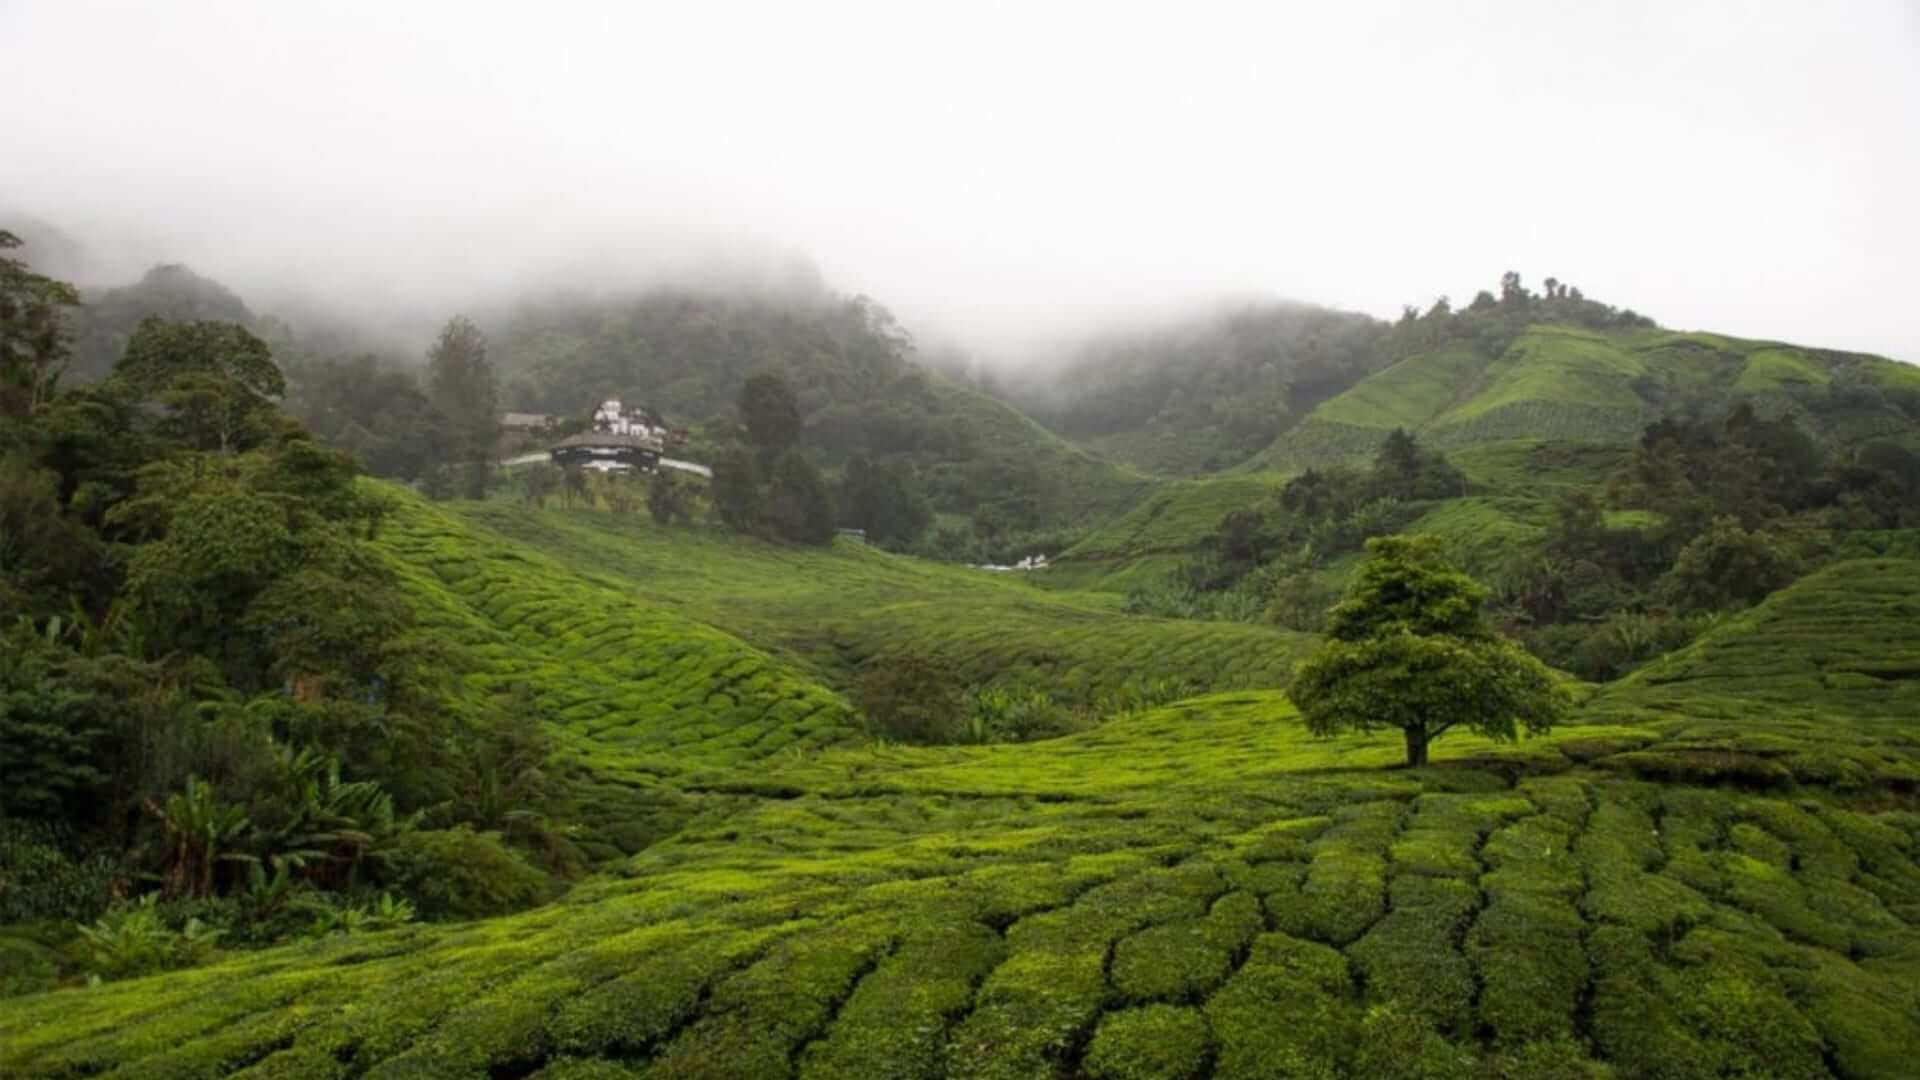 Green fields with tea plantations and foggy weather in Malaysia.